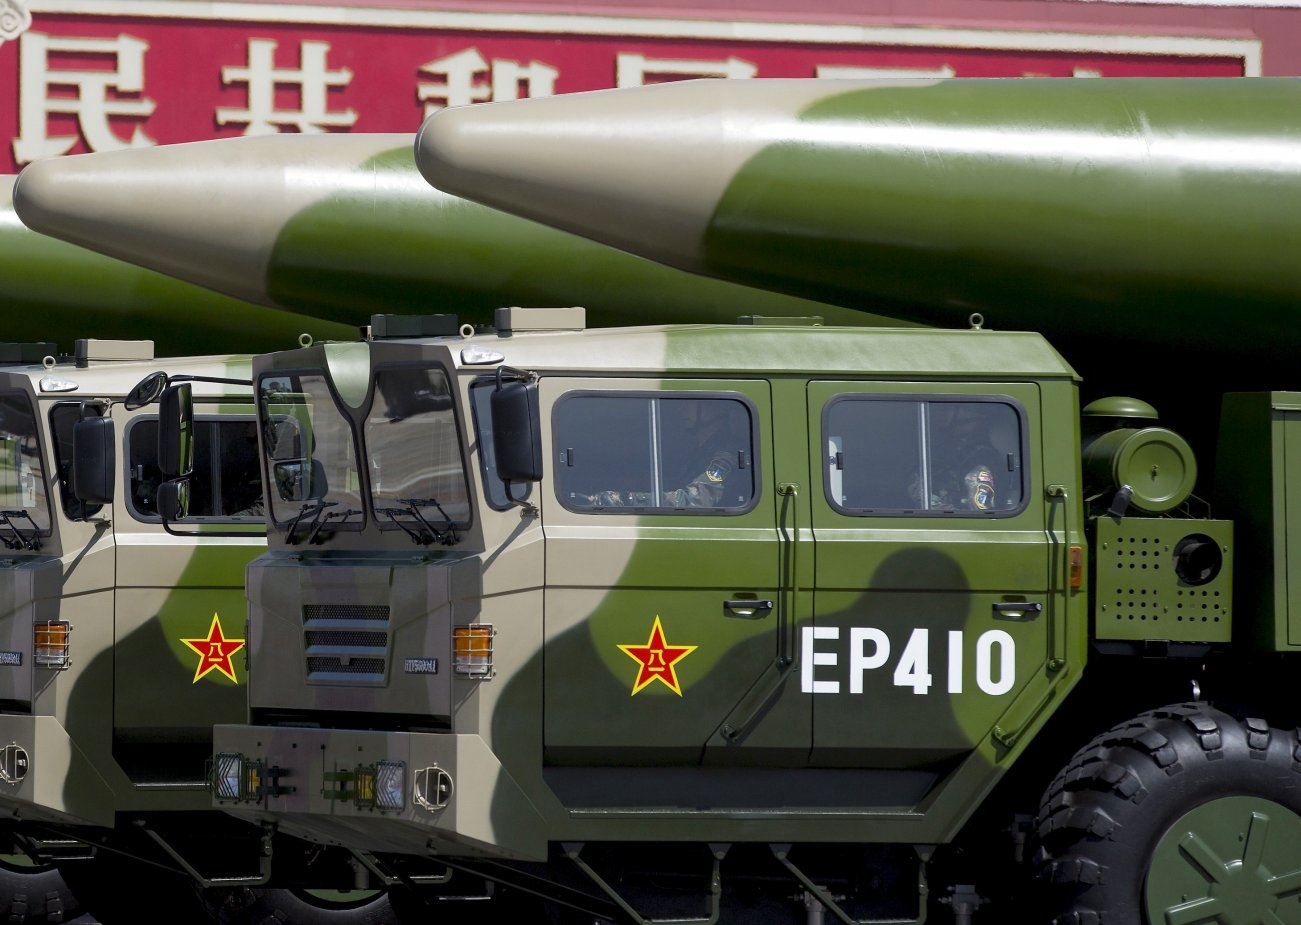 3 Ways China Could Sink the U.S. Navy in a War (Missiles, Mines and More)